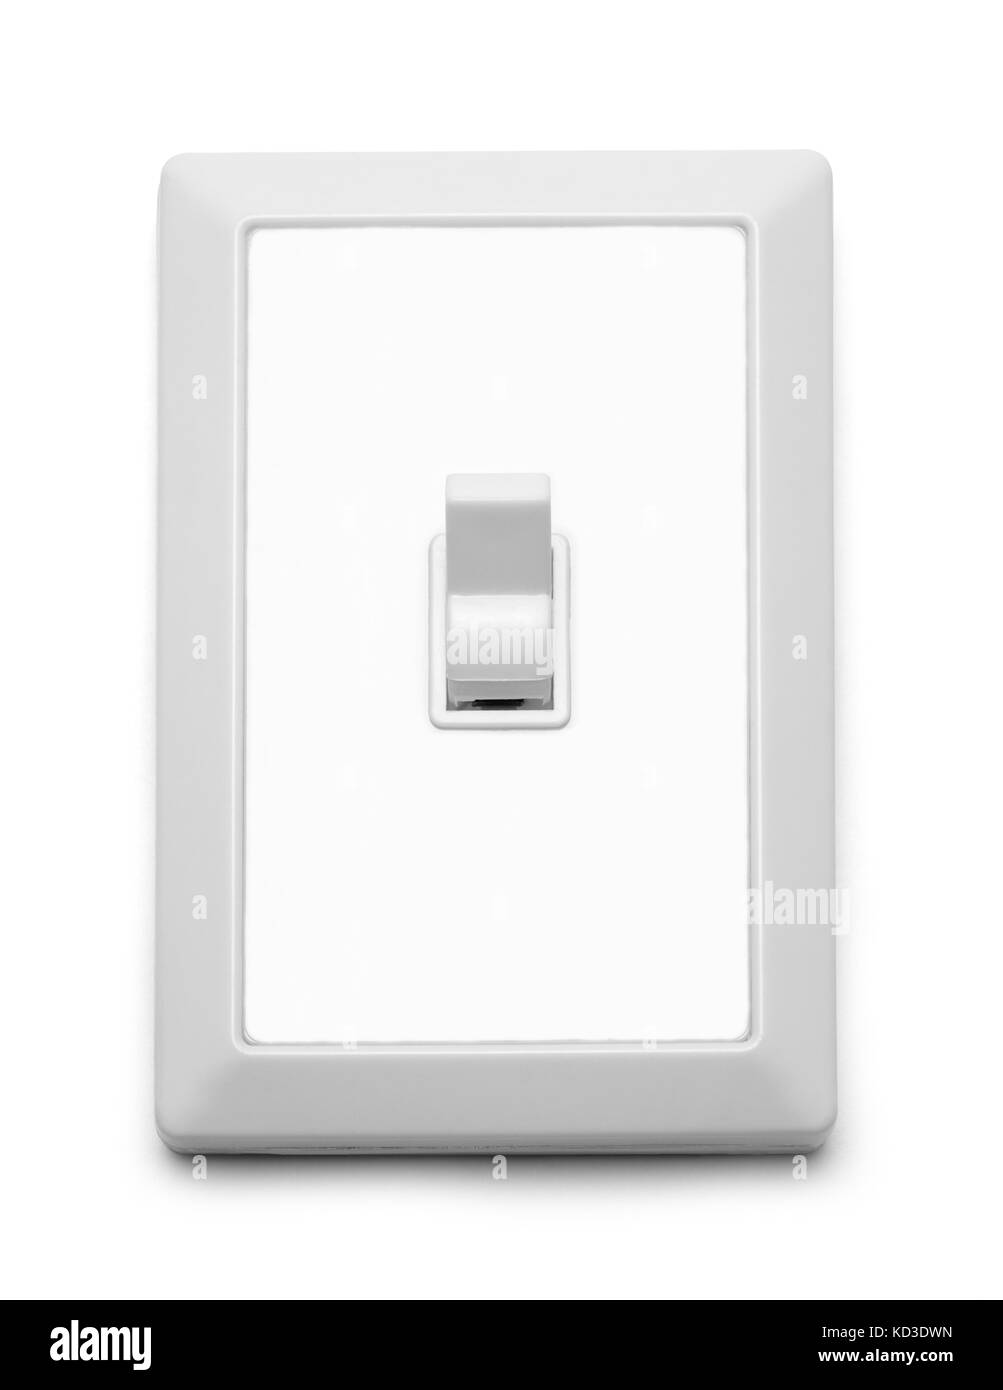 Wall Light Switch On Isolated On White Background. - Stock Image